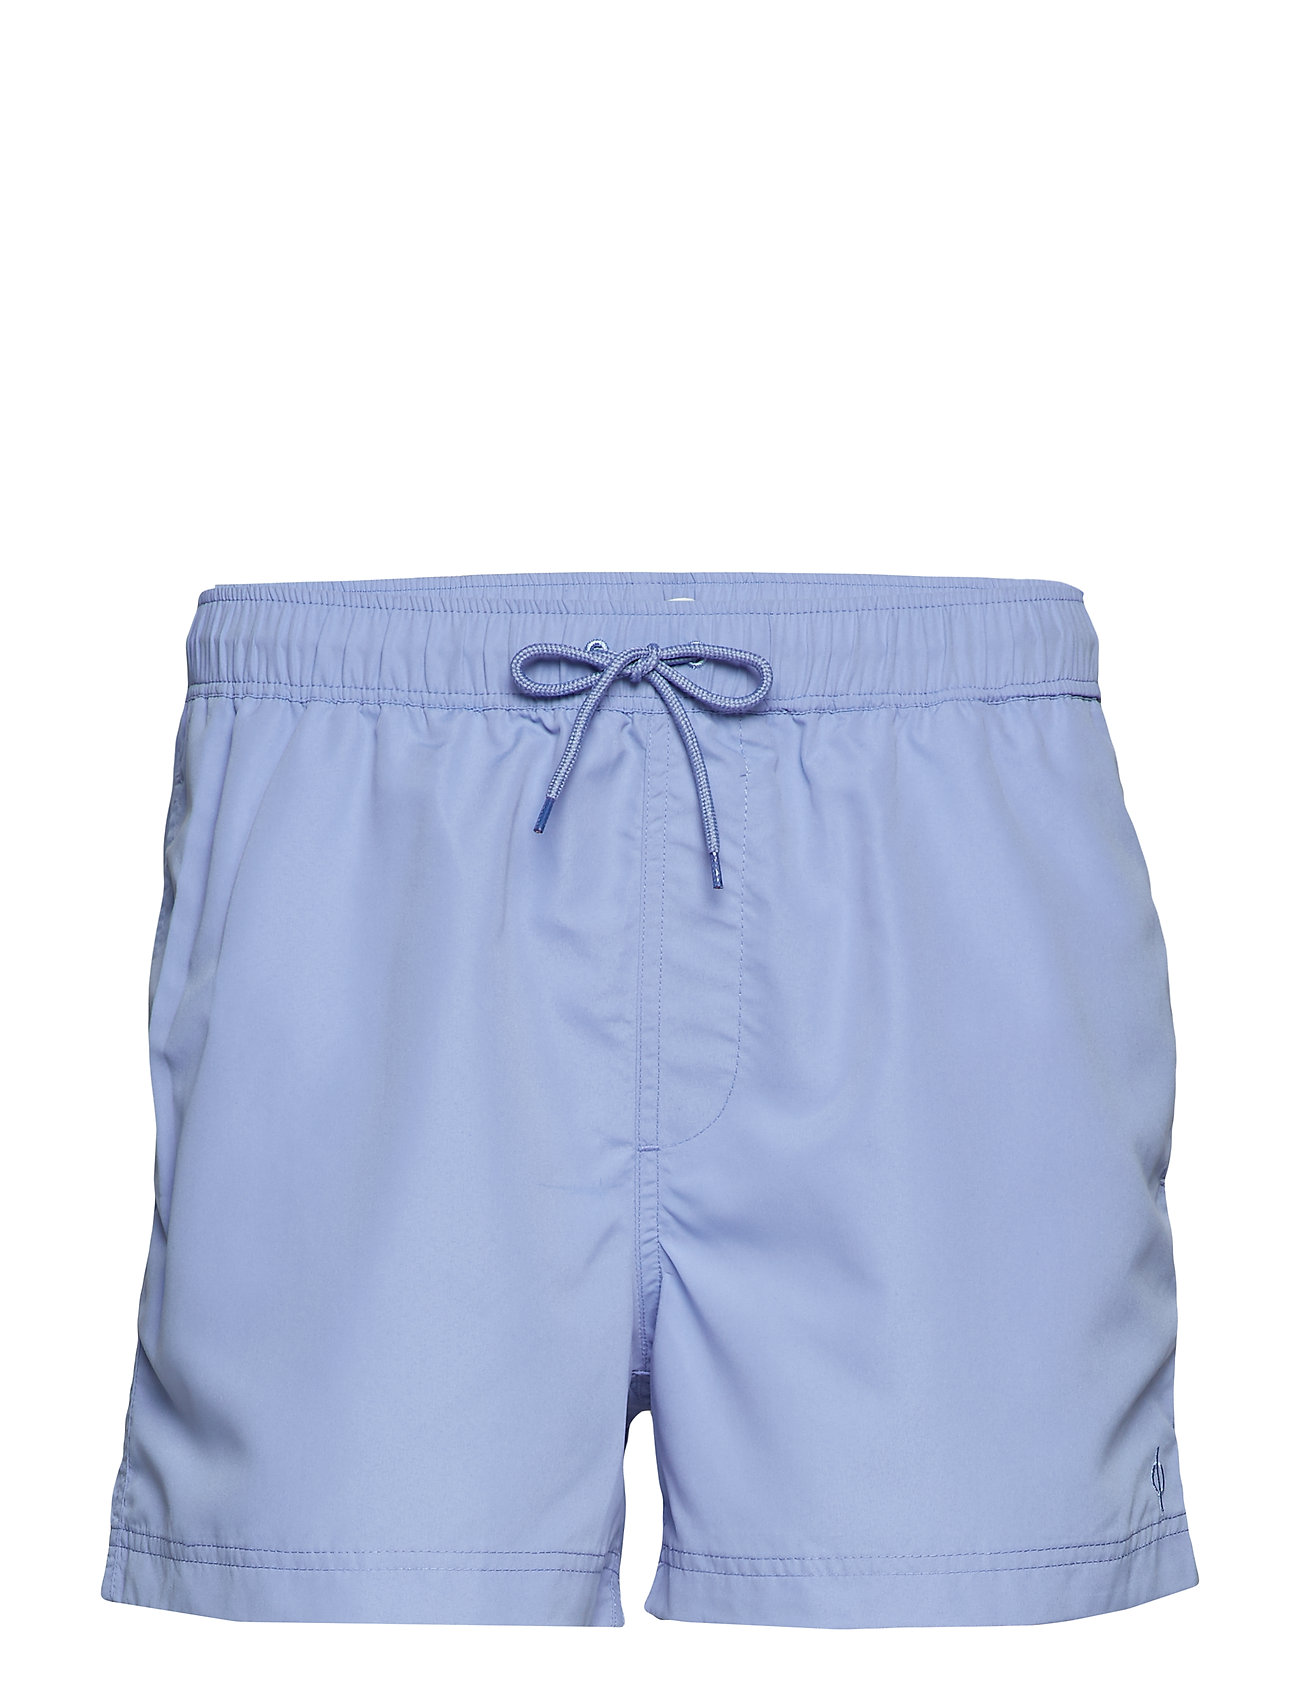 Shorts Mason Air Swim 6956bel BlueSamsøeamp; oxBCed